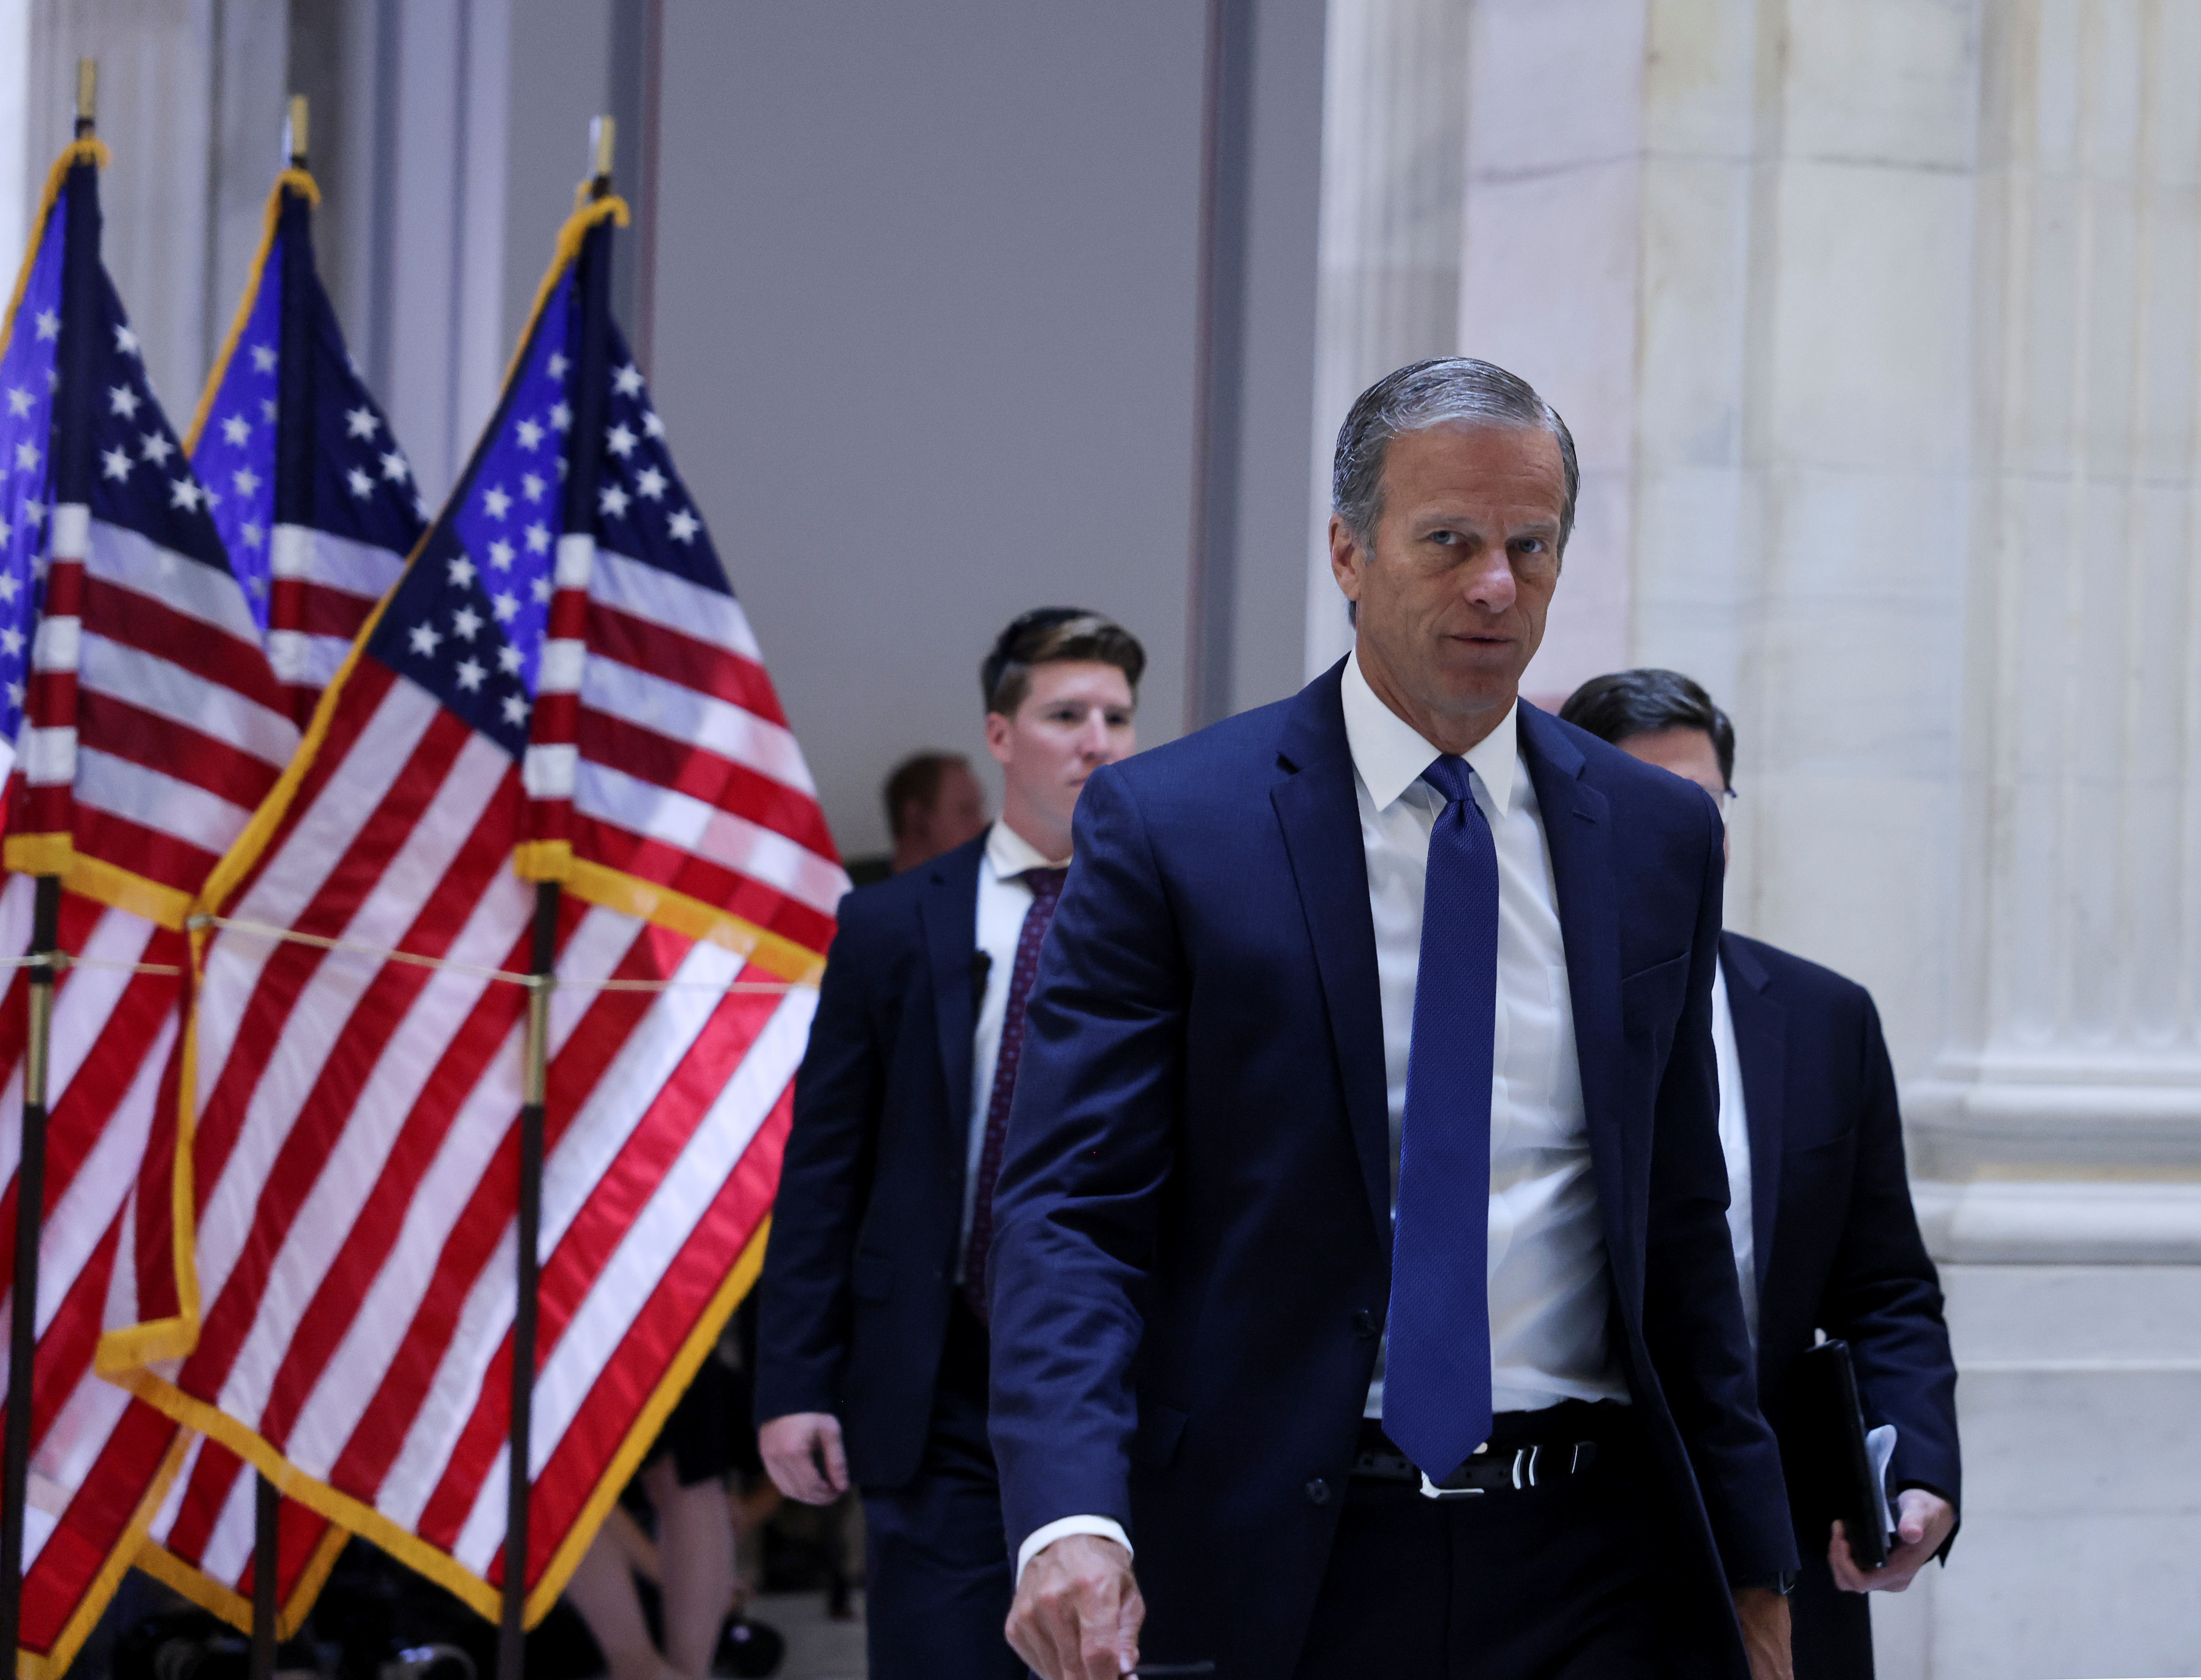 U.S. Senator John Thune (R-SD) arrives for the weekly Senate Republican caucus policy luncheon on Capitol Hill in Washington, U.S., June 8, 2021. REUTERS/Evelyn Hockstein